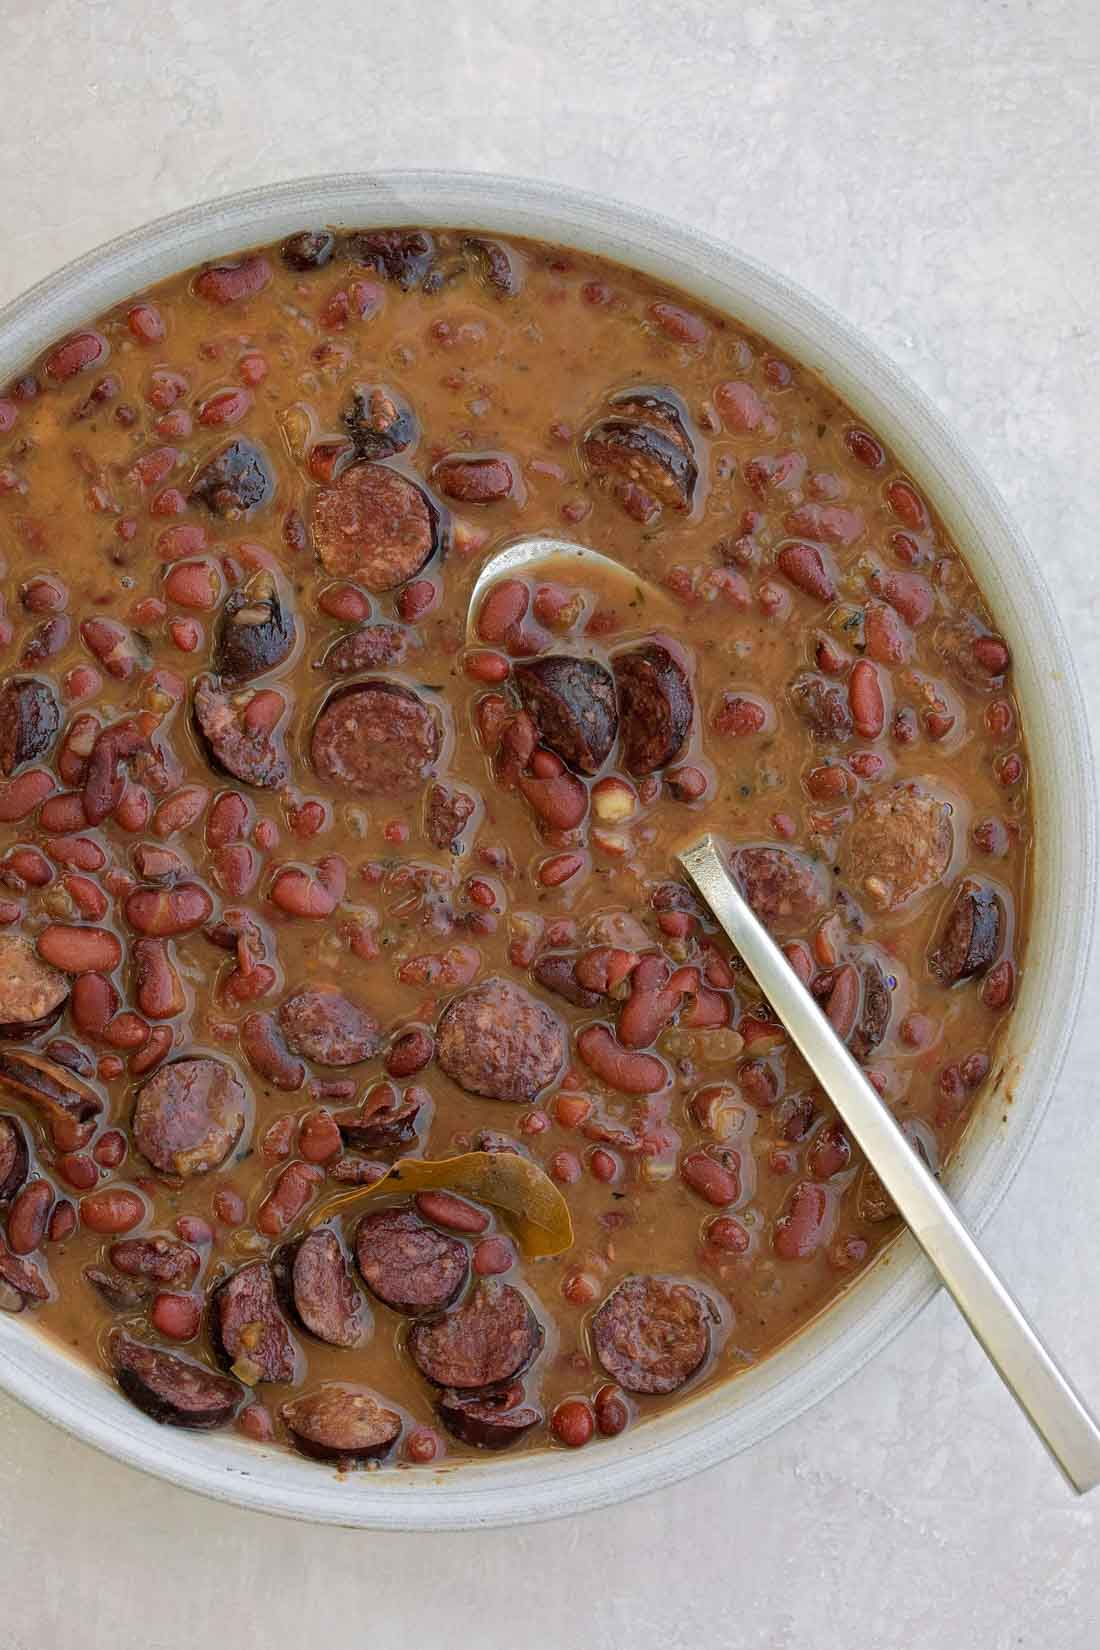 Red beans and rice with sausage in bowl